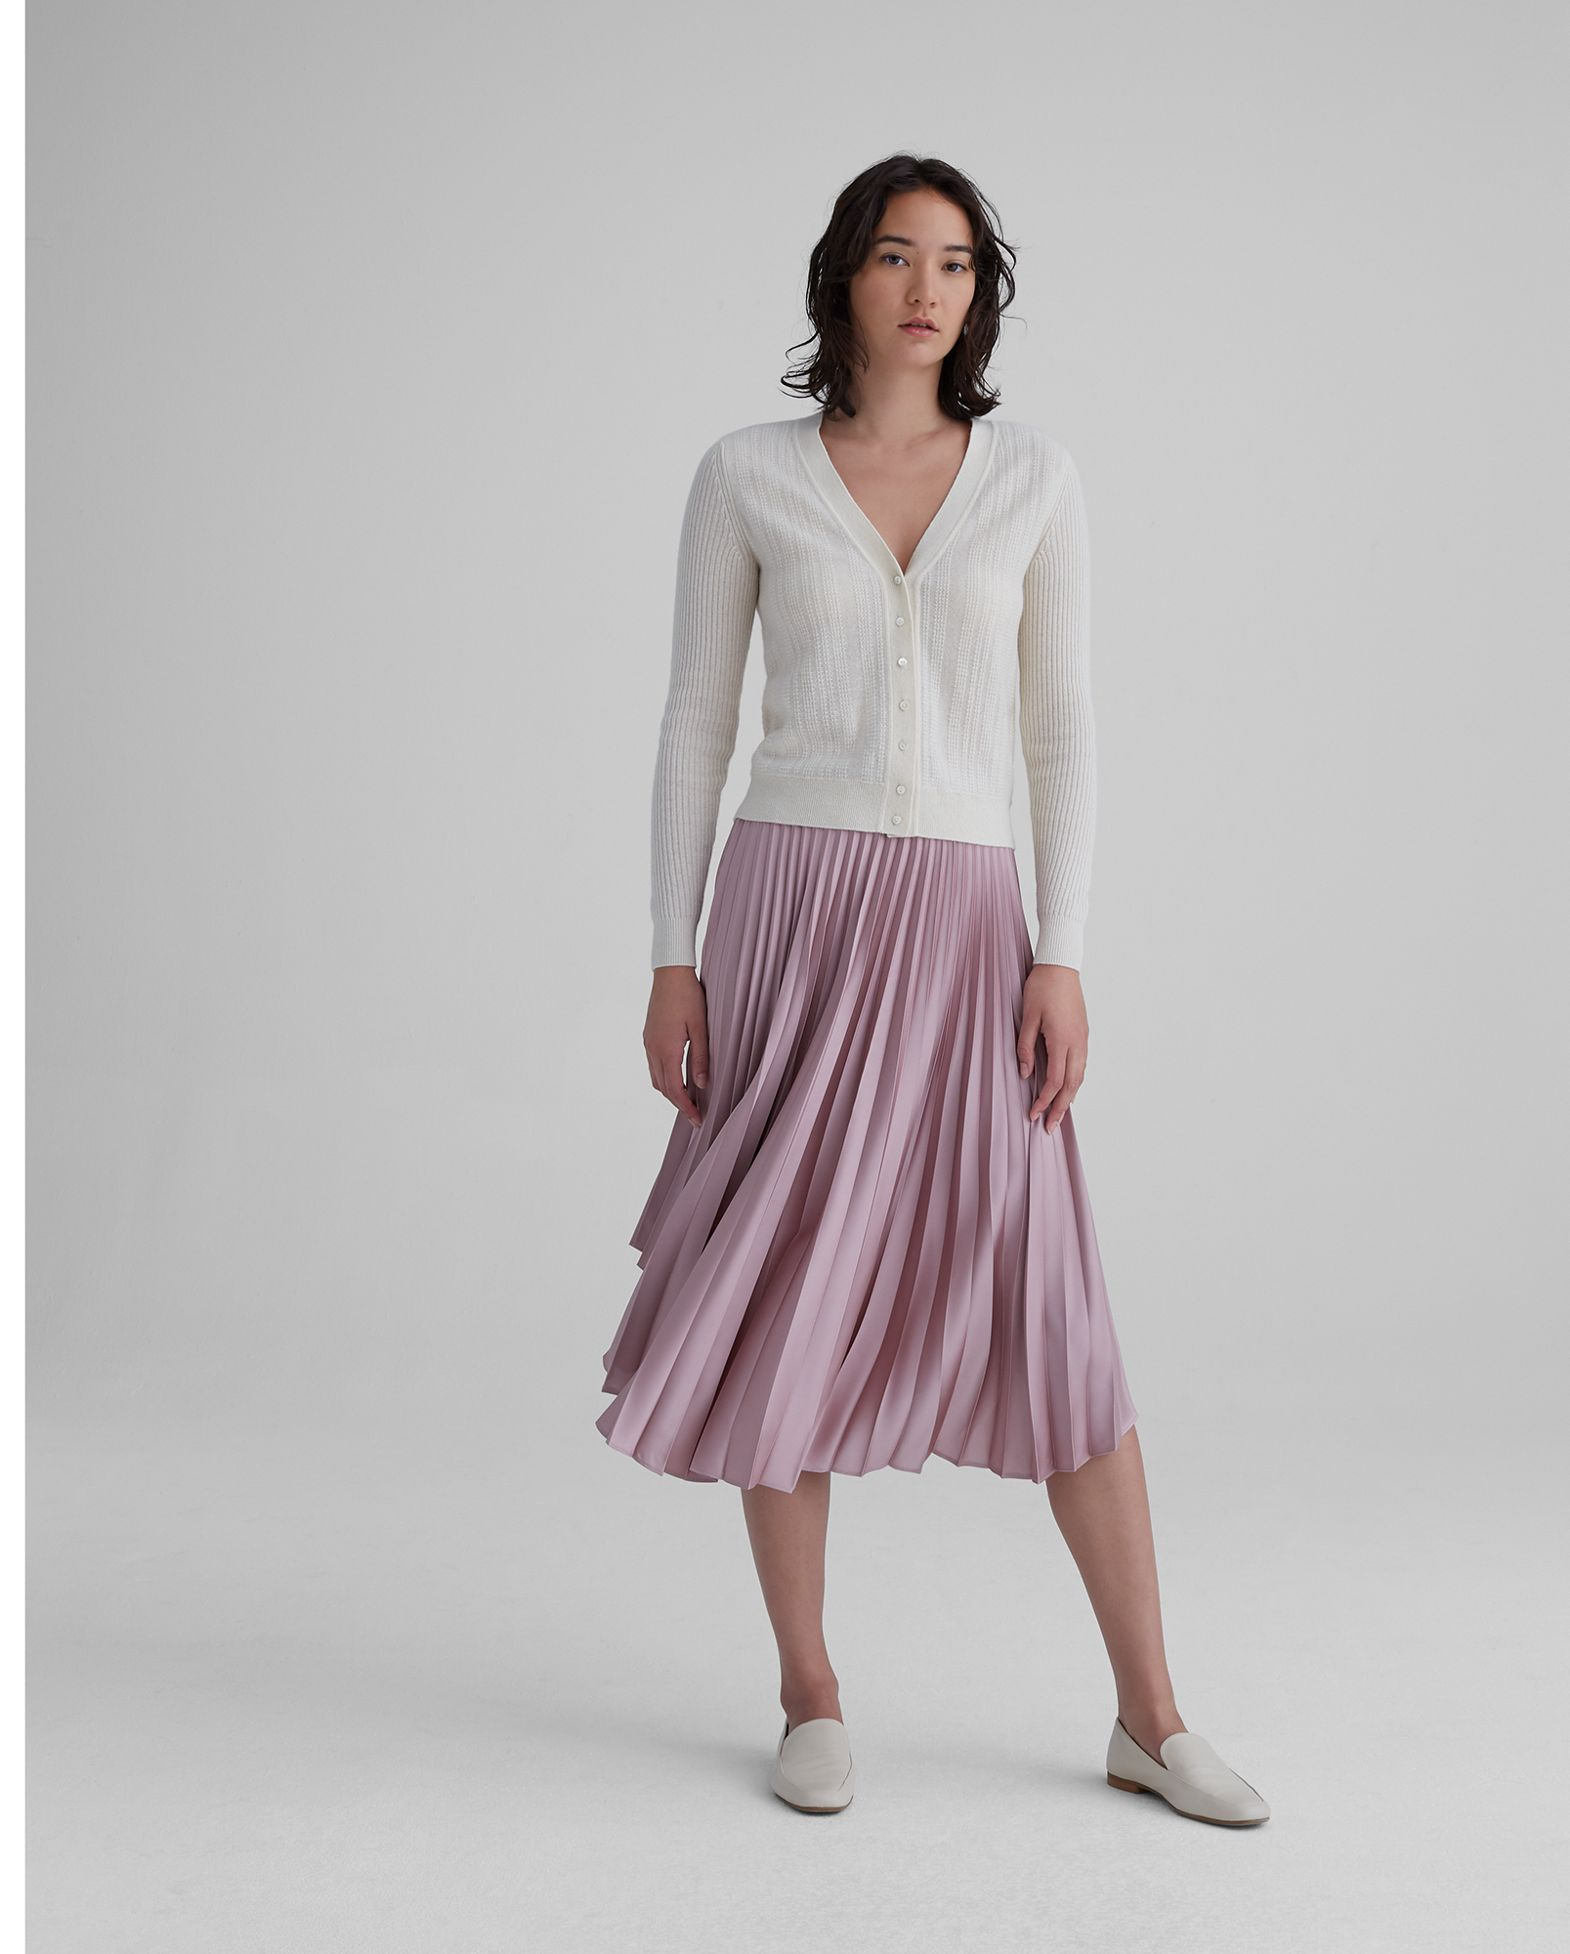 Club Monaco: Memorial Day Event! 25% off sitewide!